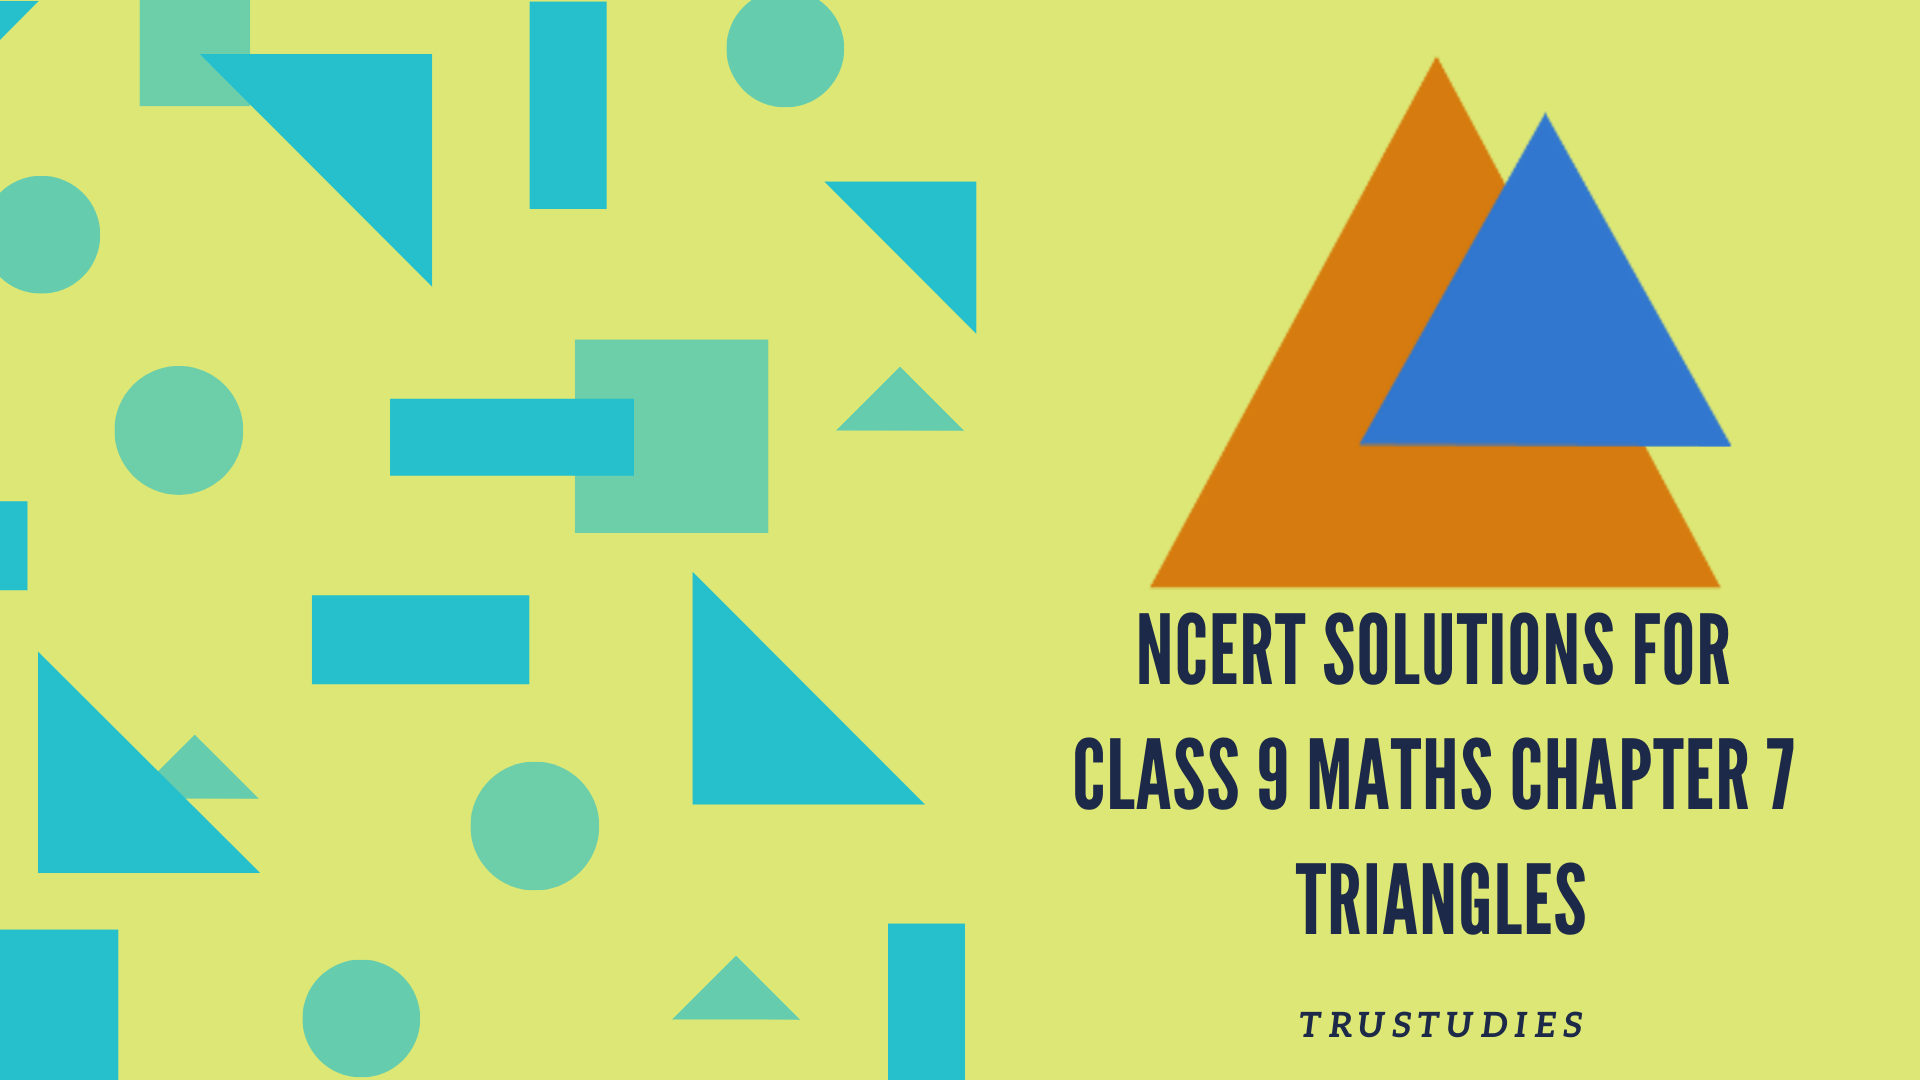 NCERT solutions for class 9 maths chapter 7 triangles banner image